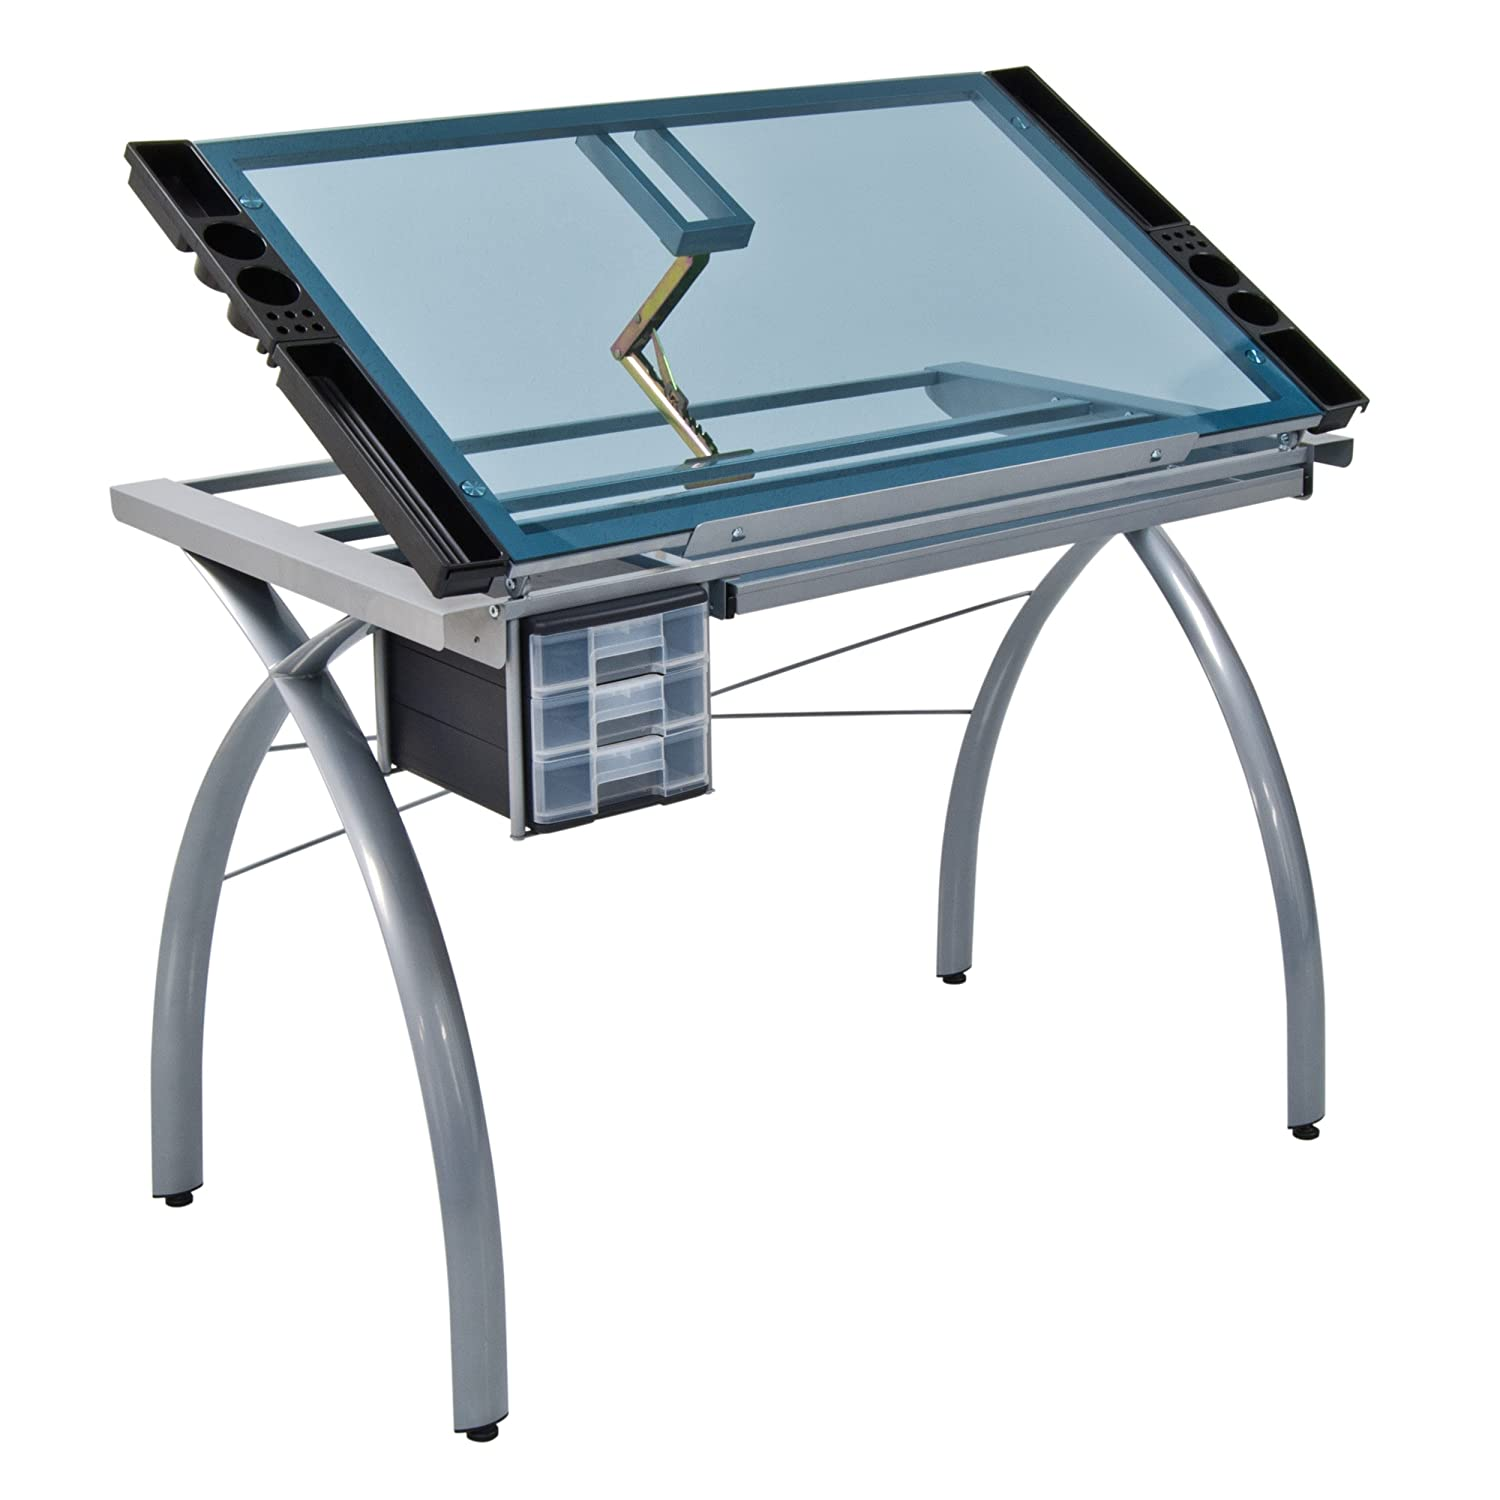 Modern drafting table - Amazon Com Studio Designs 10050 Futura Craft Station Silver Blue Glass Arts Crafts Sewing